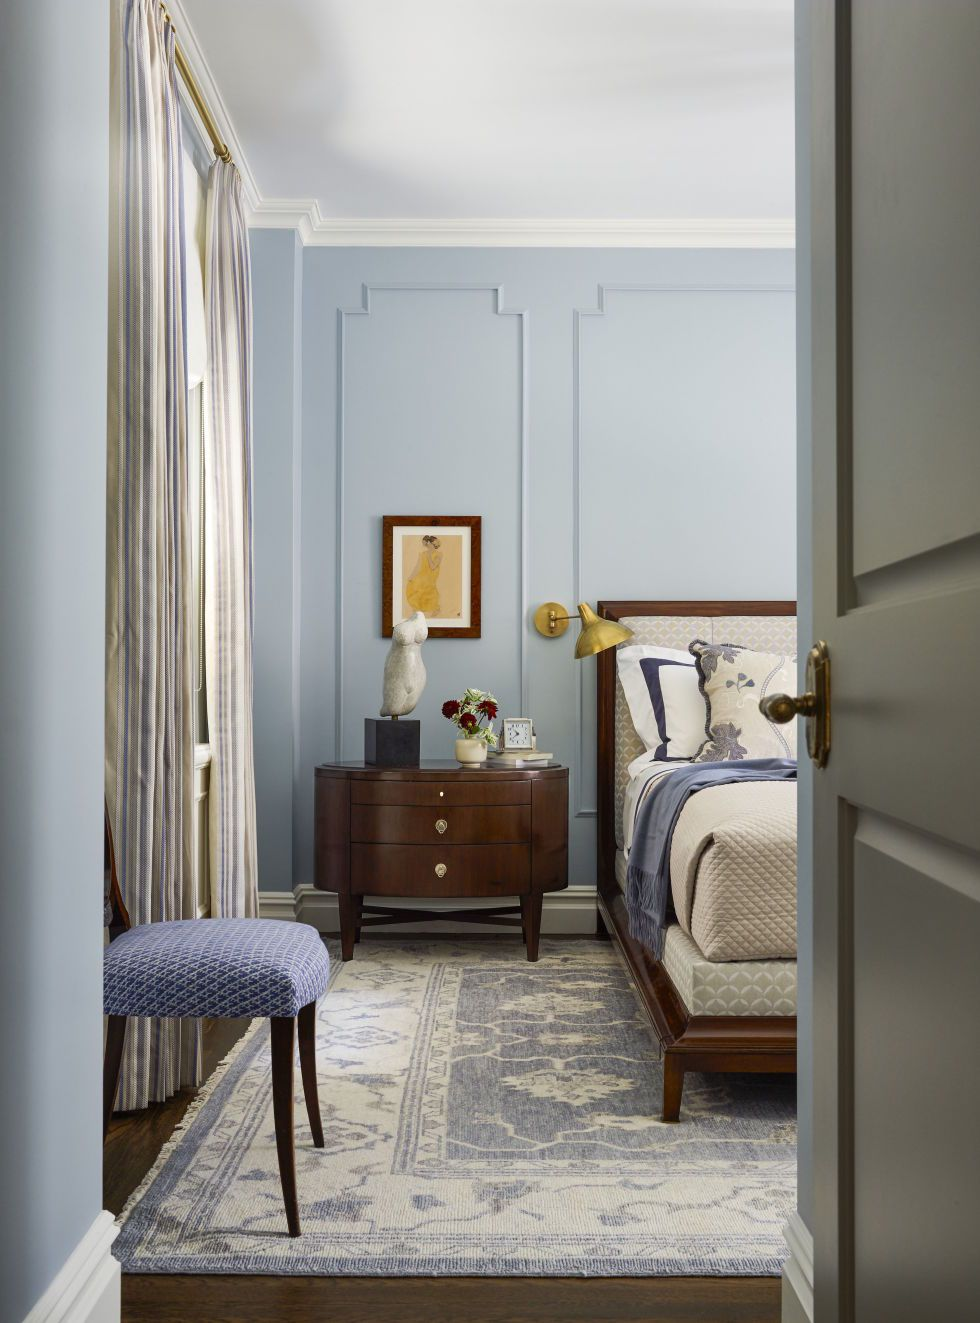 Decor Inspiration: Pre-War Perfection   The Simply Luxurious Life